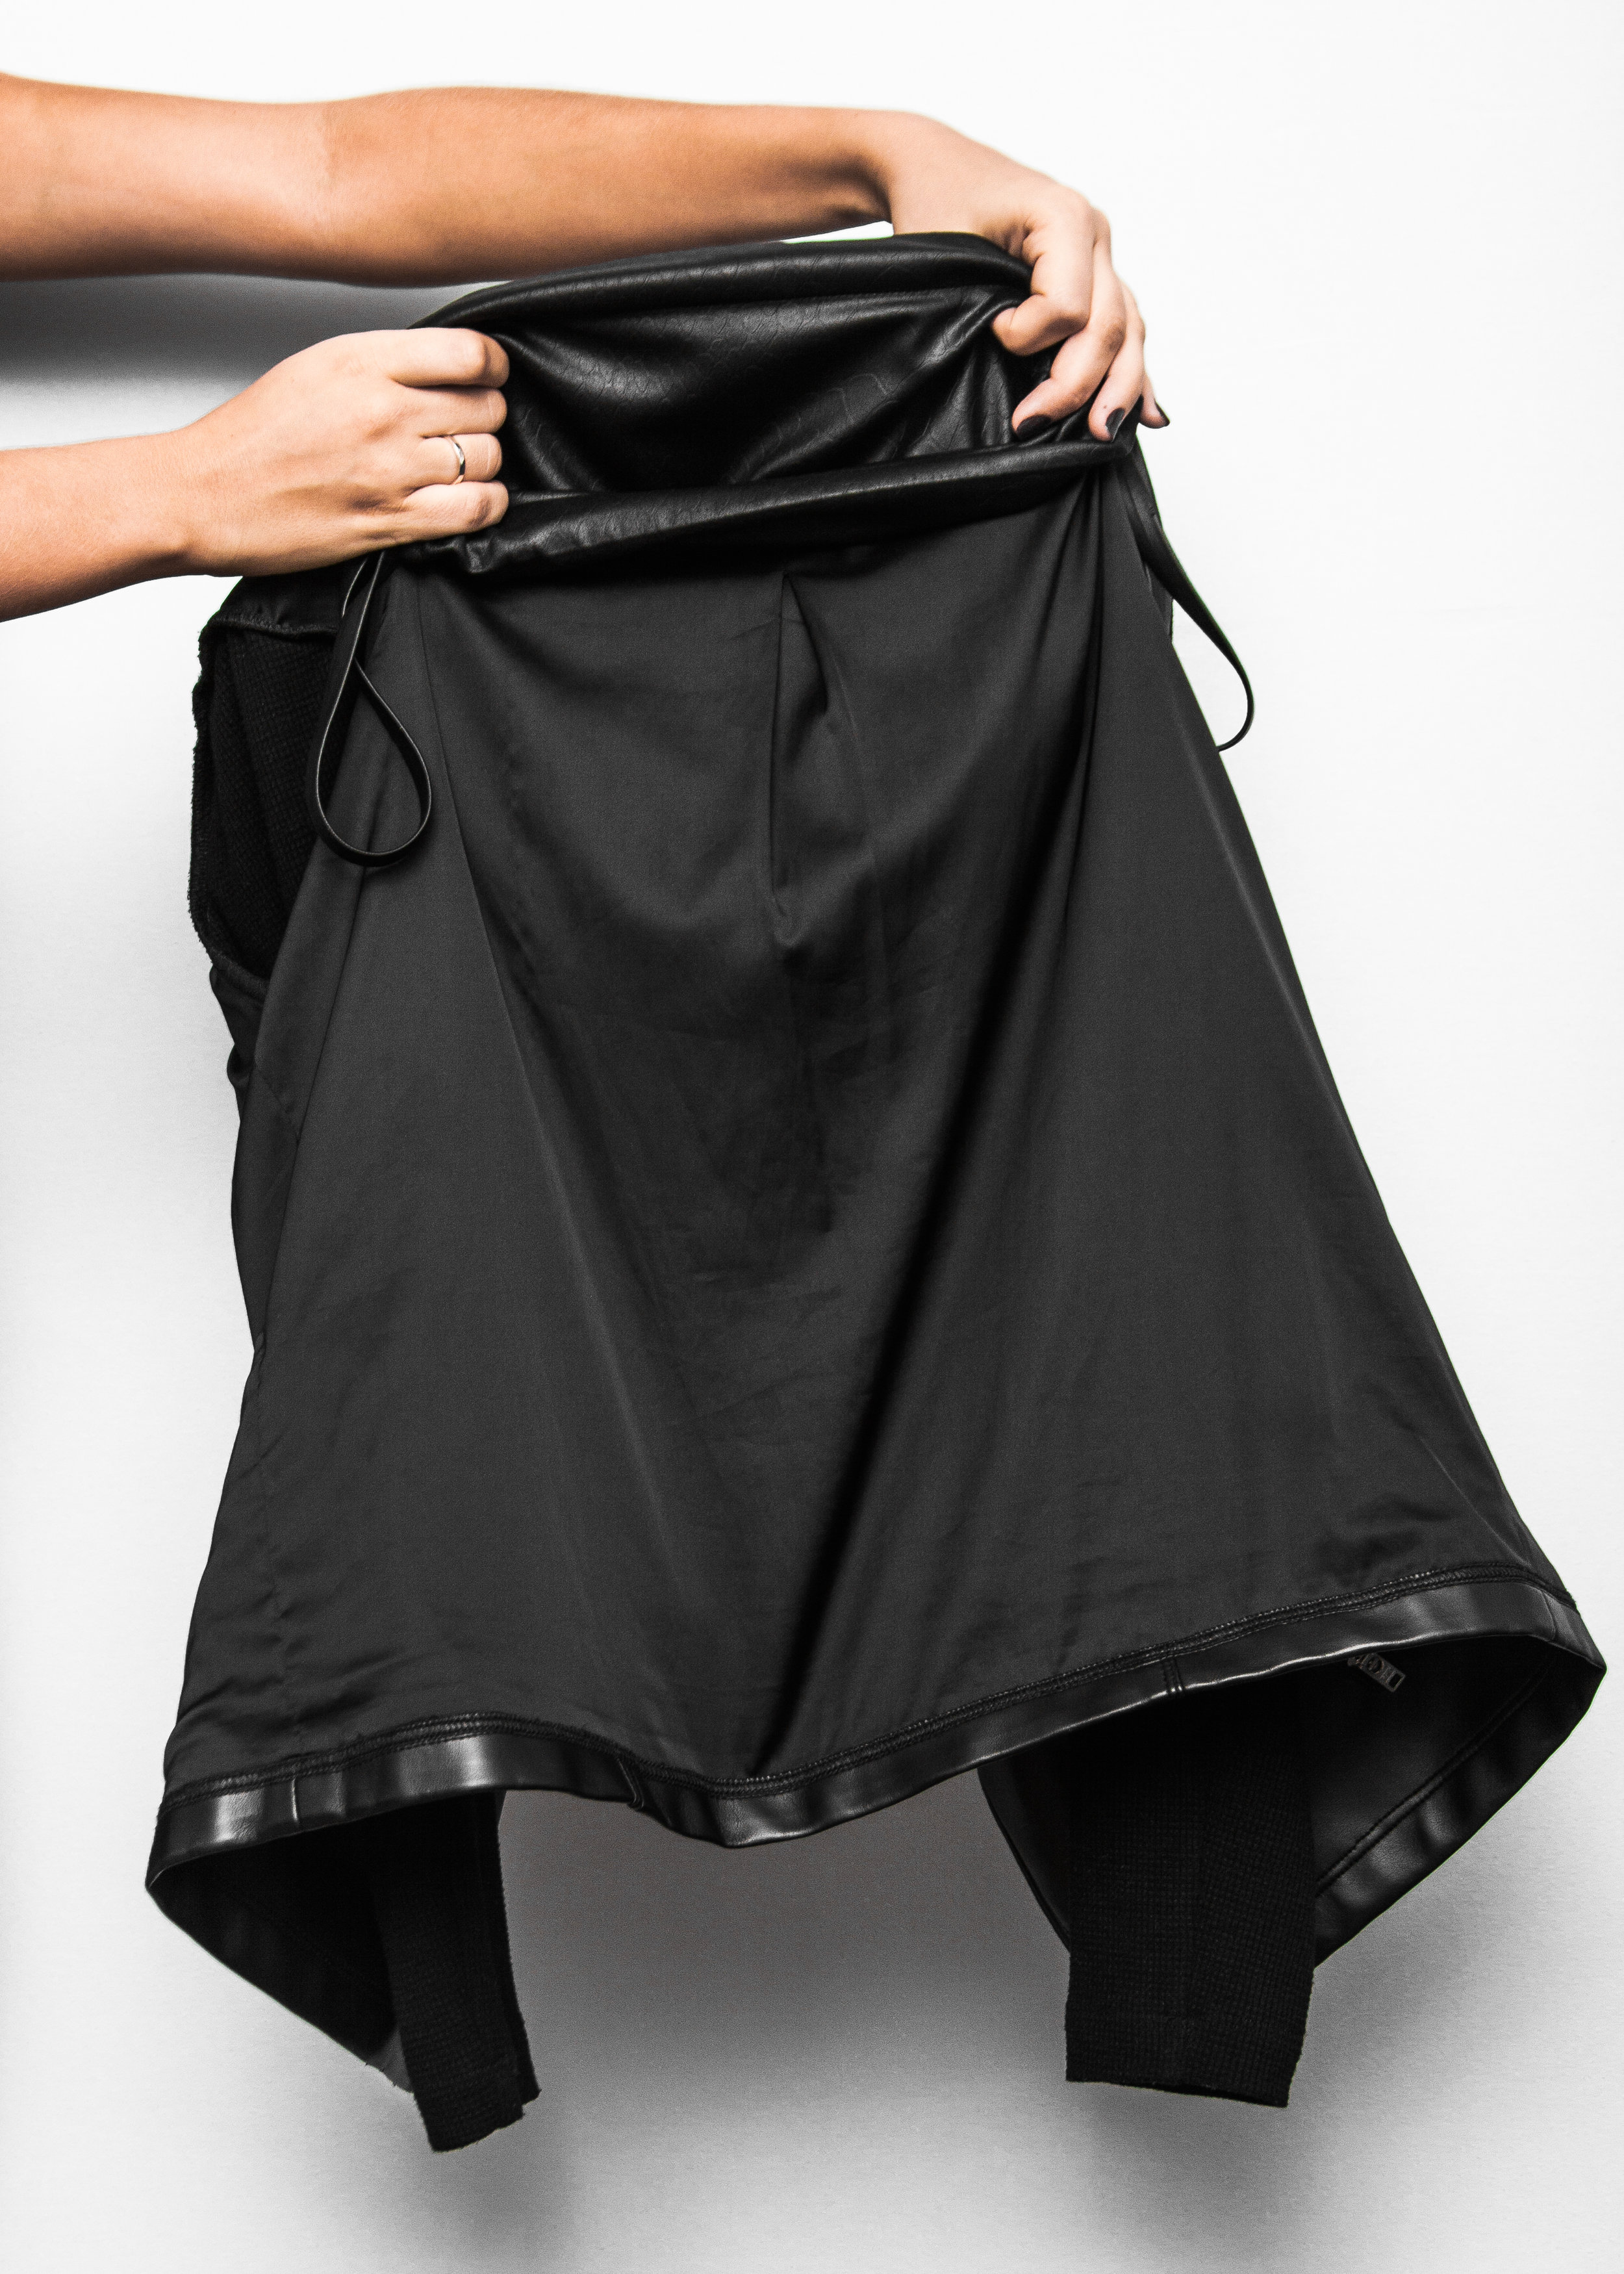 3. Reverse jacket from liner